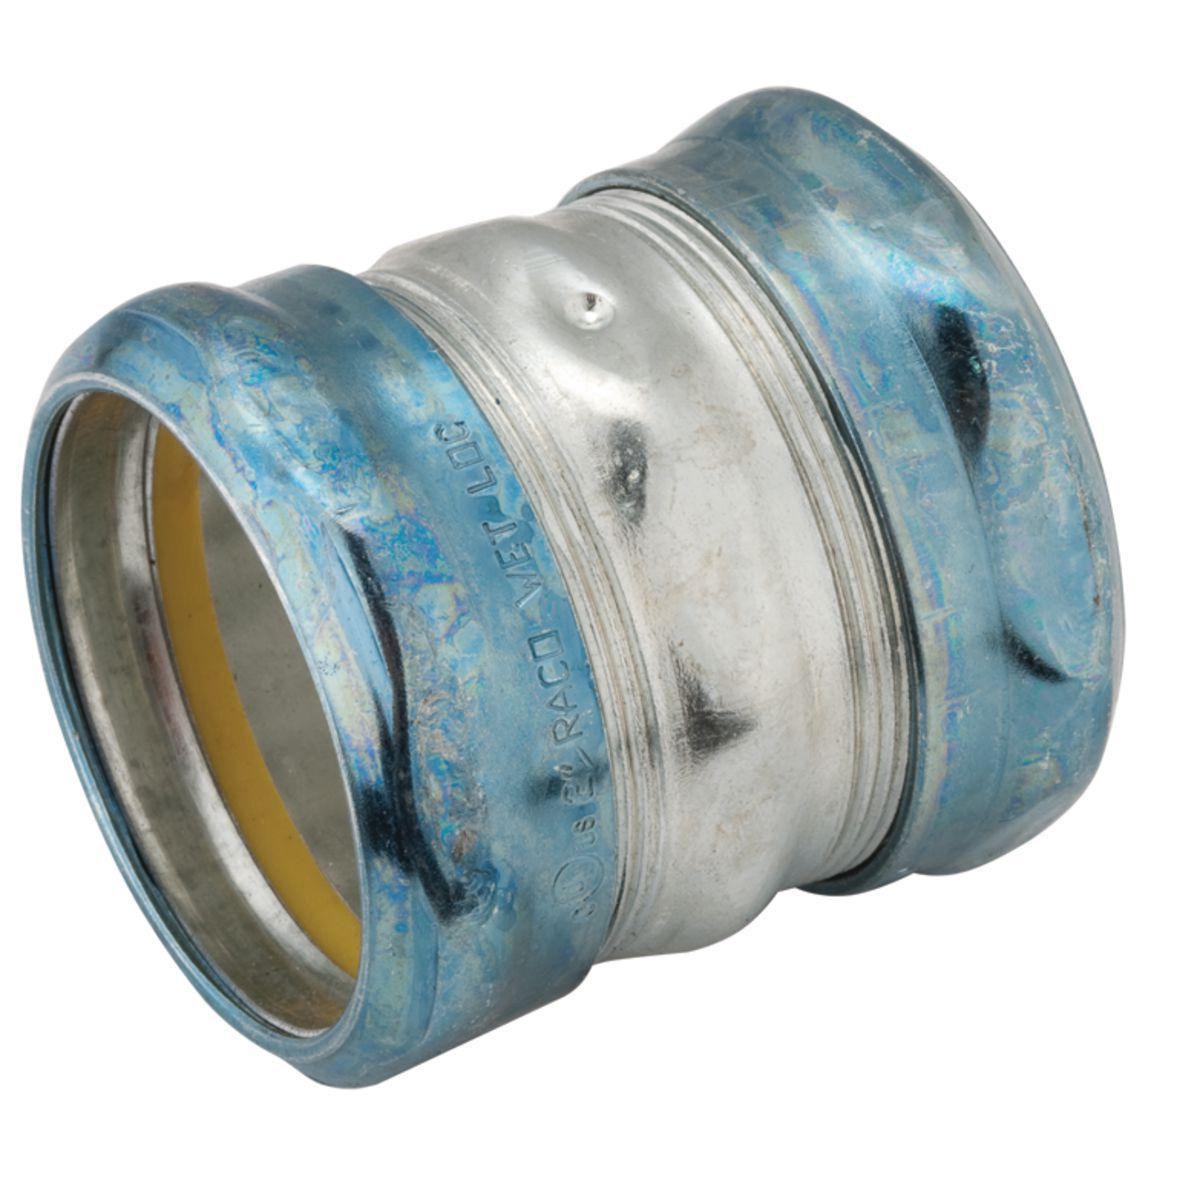 EMT COMPR COUPLING RAINTIGHT 3 IN STEEL